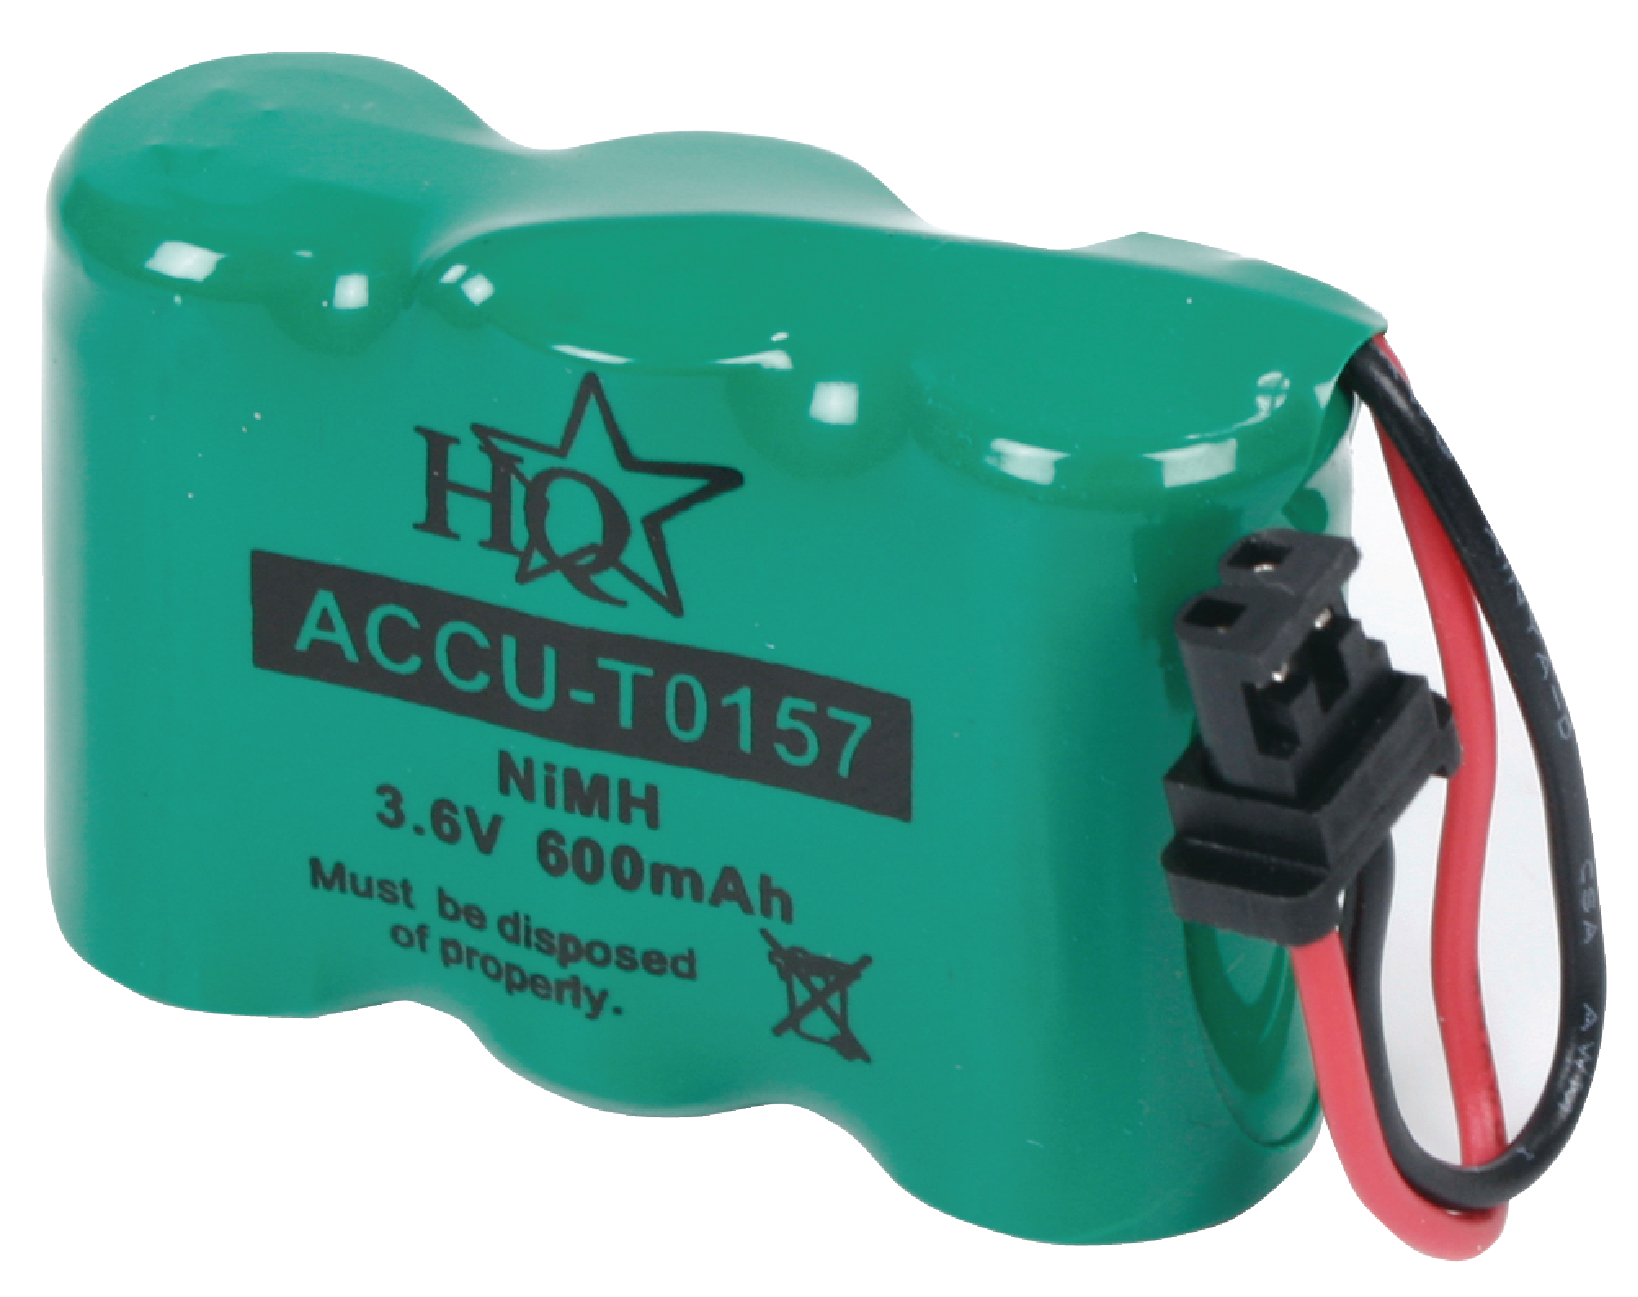 Accu Batterien Accu T0157 Hq Rechargeable Nimh Battery Pack 3 6 V 600